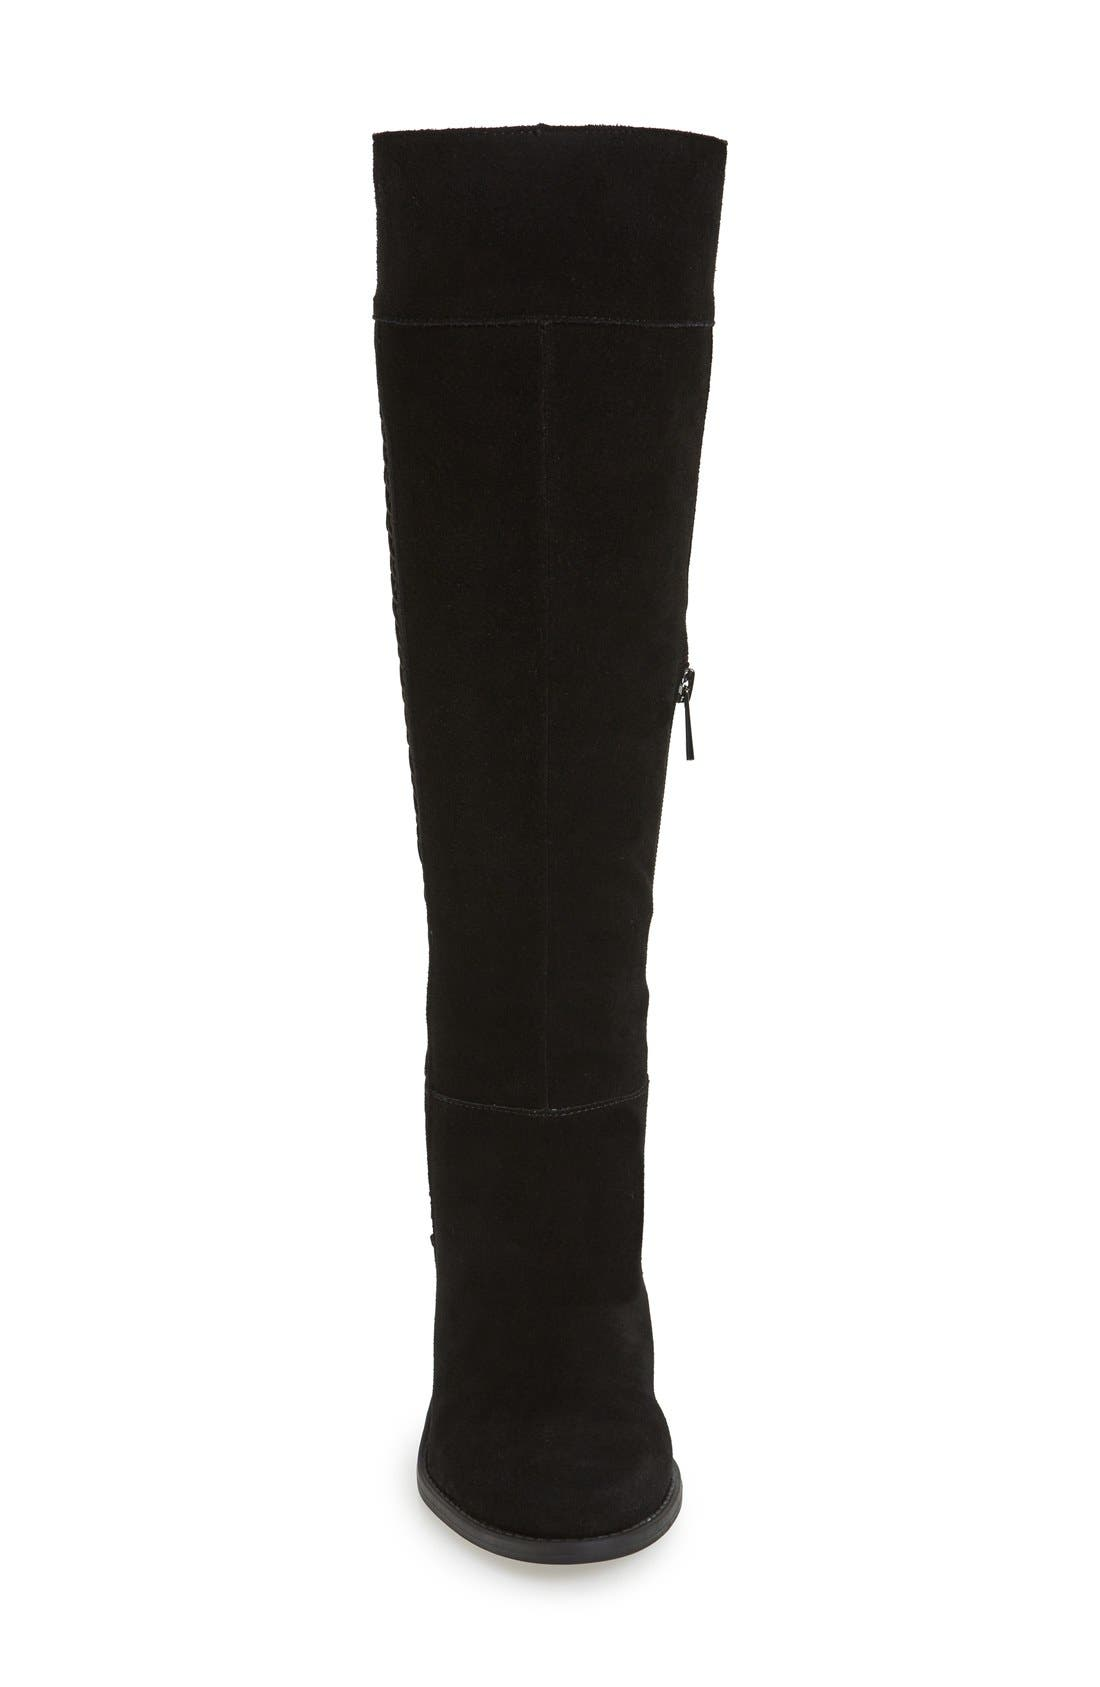 Ciarah Knee High Boot,                             Alternate thumbnail 2, color,                             001